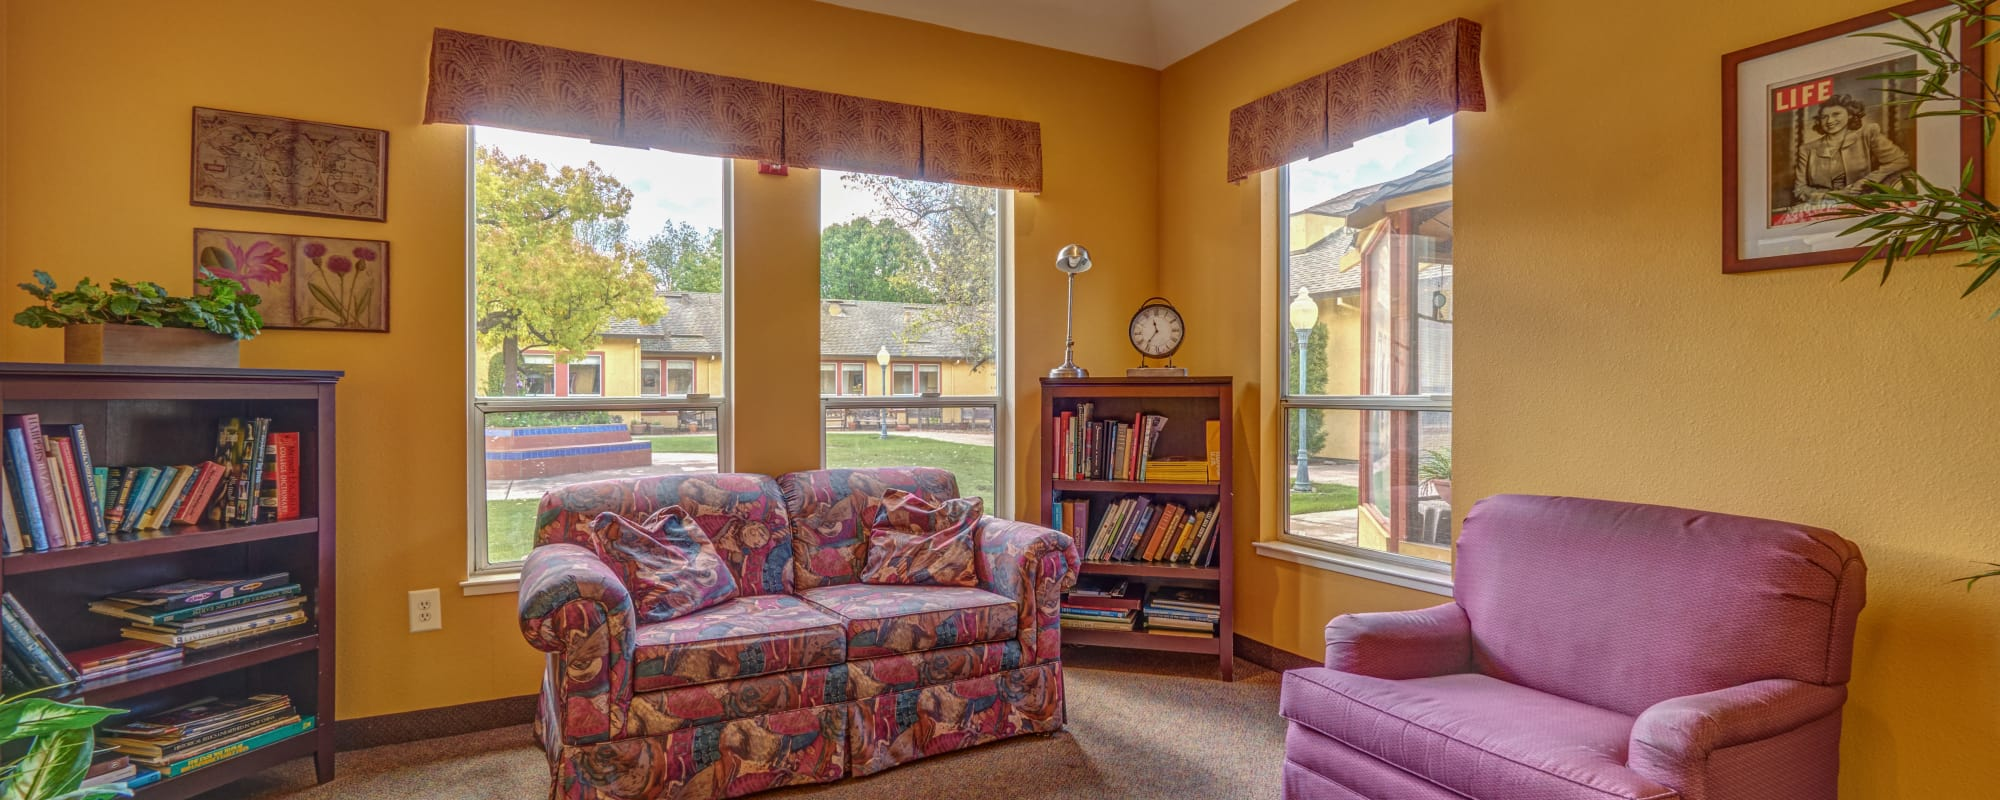 Living space at senior living community in Petaluma, California